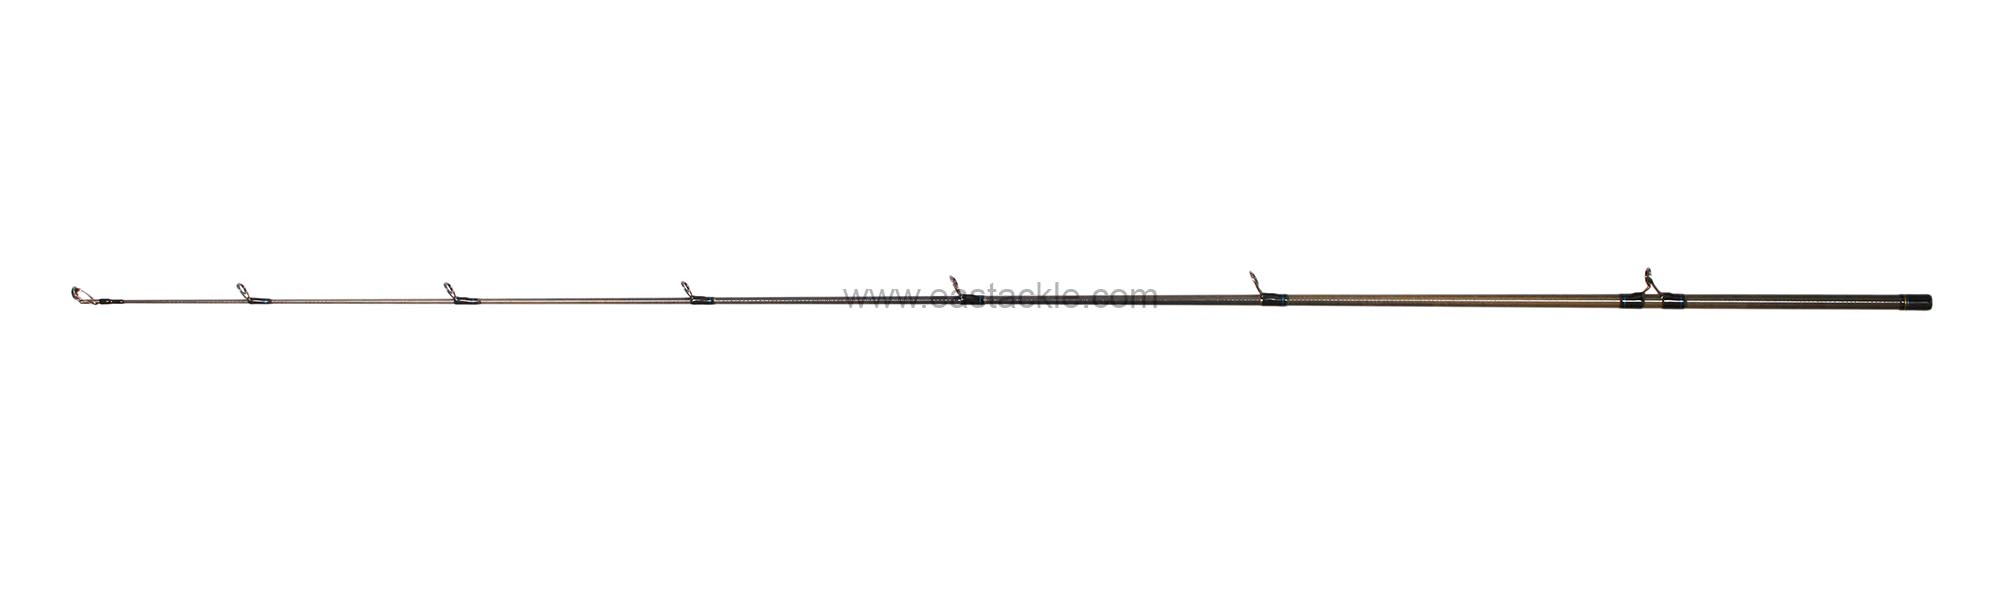 Daiwa - Harrier  - 662MHB-SD - Bait Casting Rod - Tip Section (Side View) | Eastackle